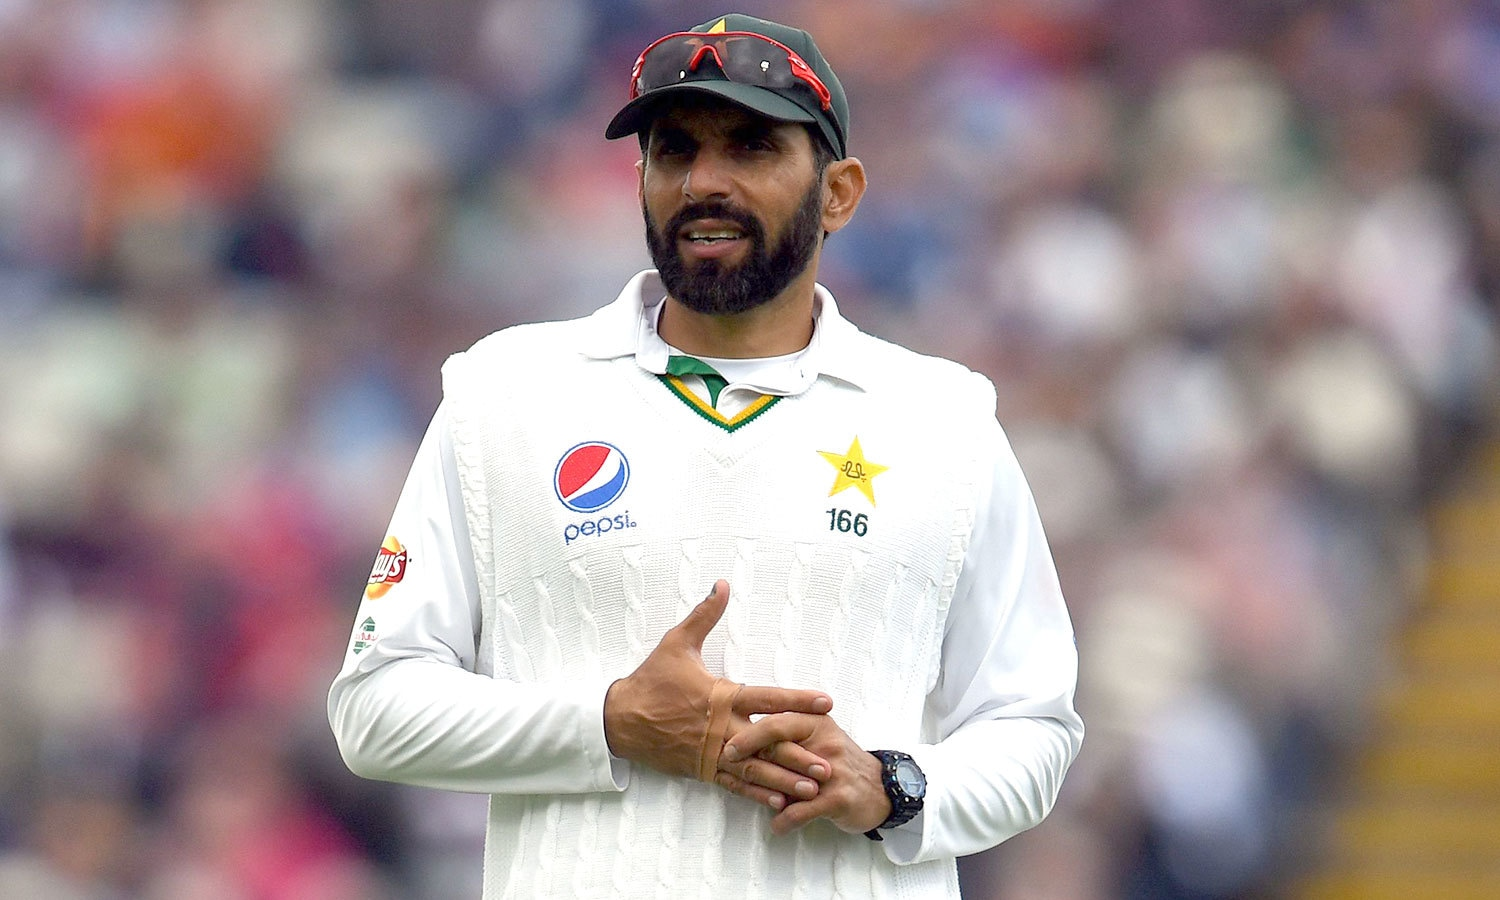 He keeps calm, stays patient and lets the game come to him instead of chasing it. It is *the Misbah way* of doing things. — AFP